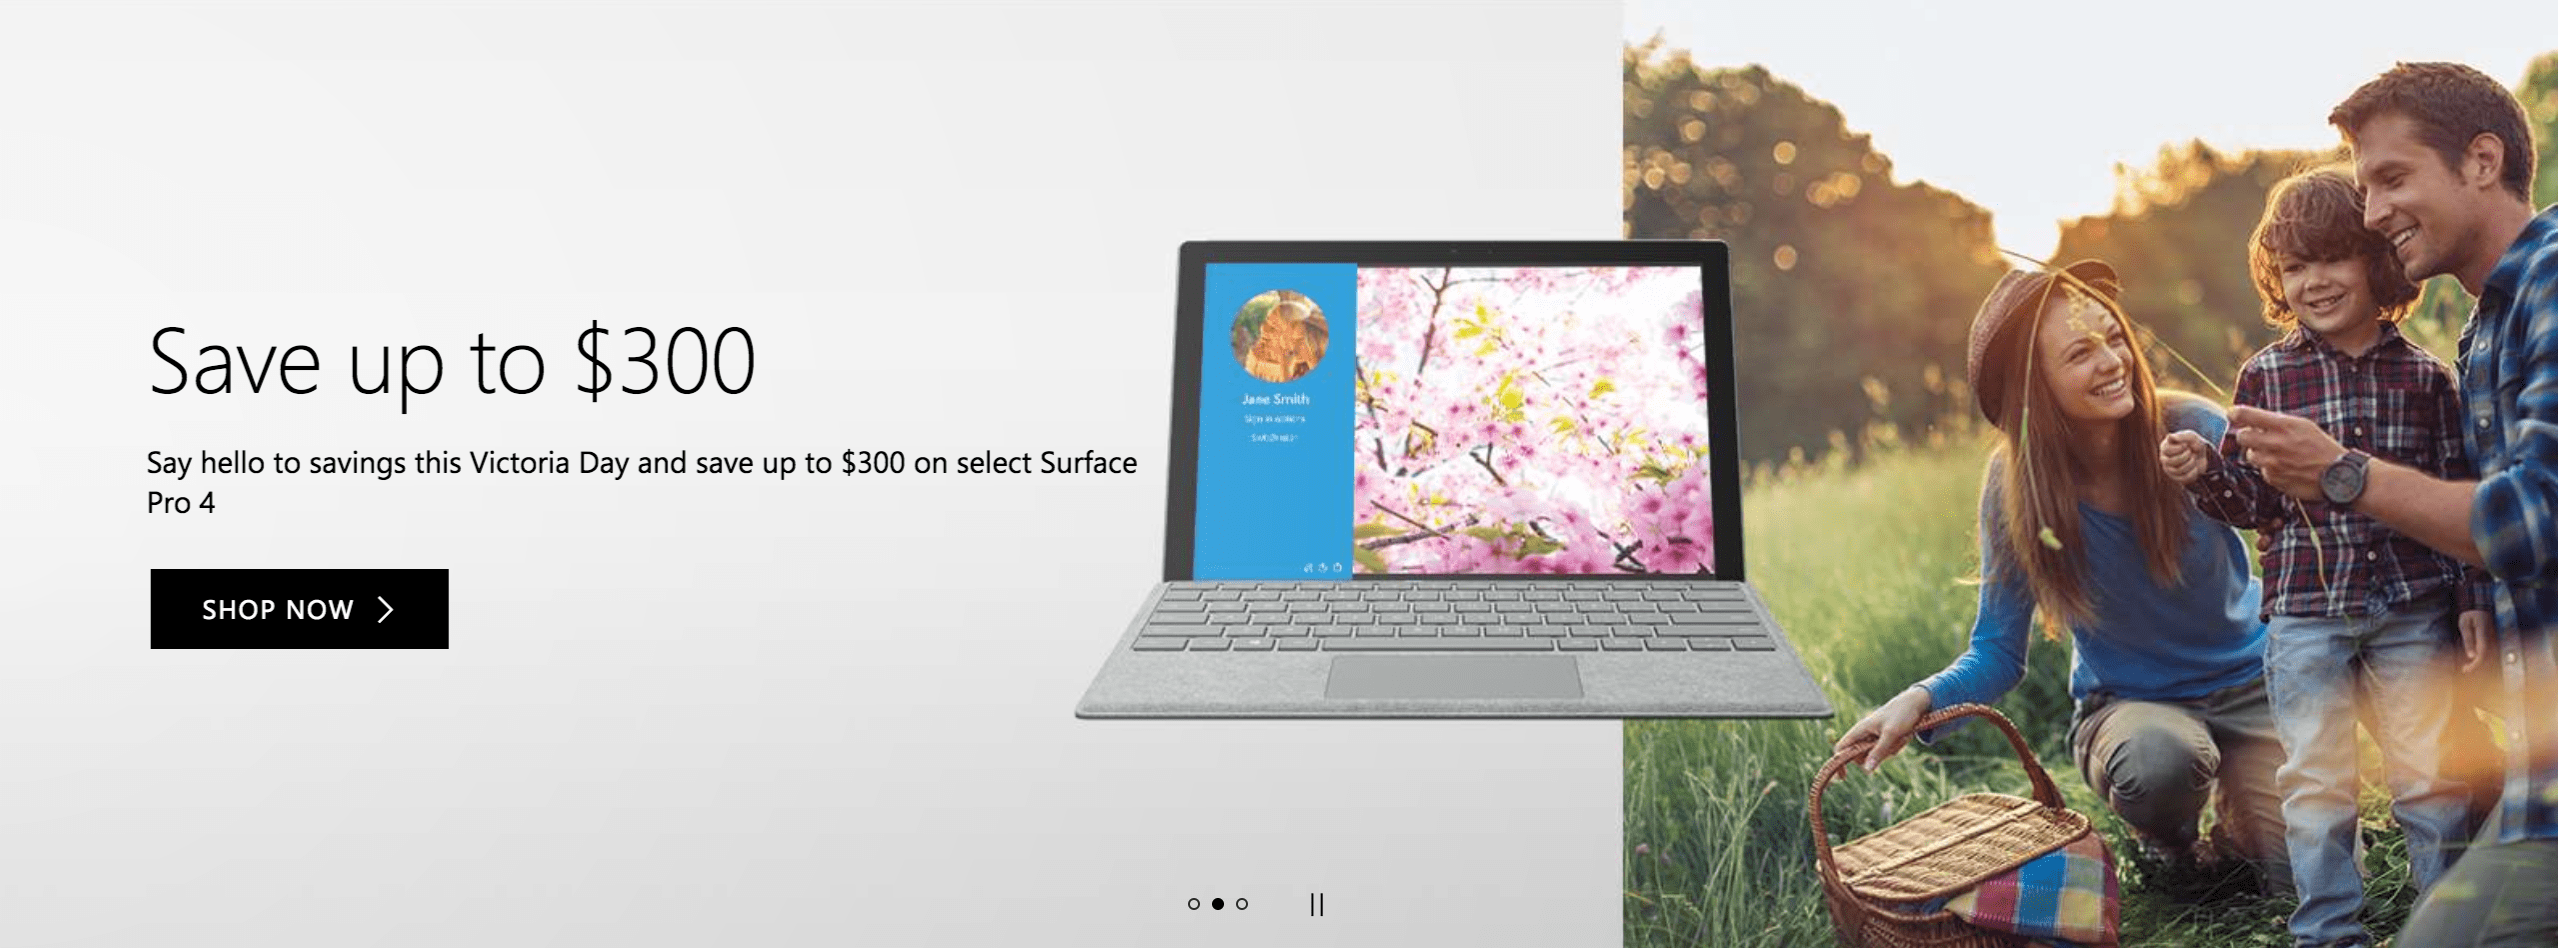 Microsoft Canada Victoria Day Deals: Save Up to $300 on Surface 4 Pro + FREE Shipping + More